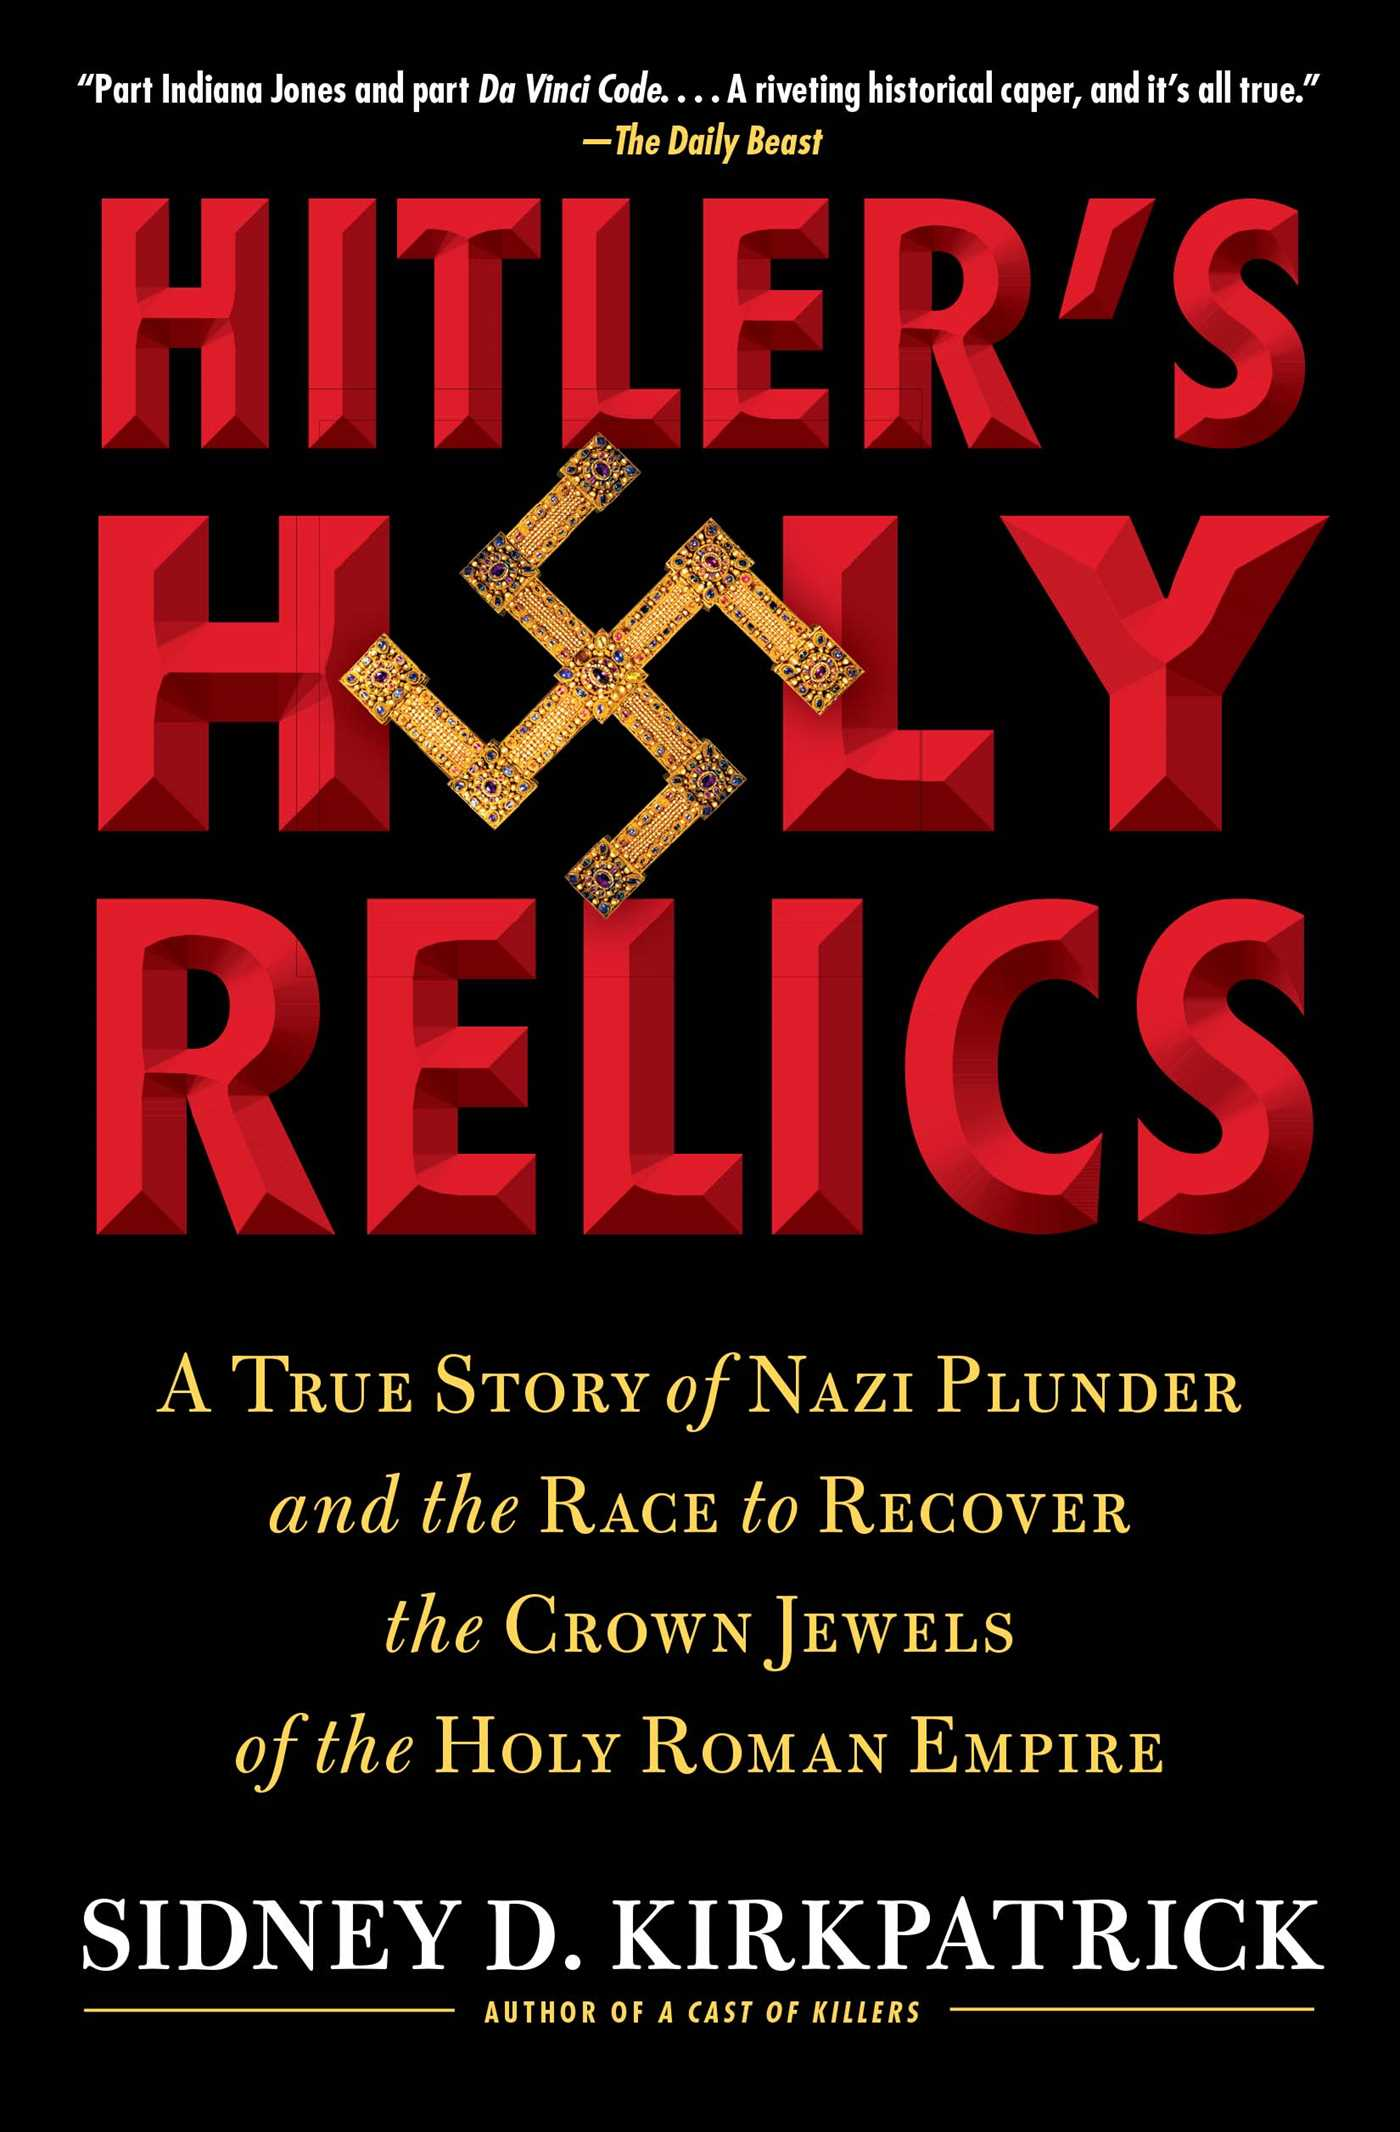 Hitlers holy relics 9781416597803 hr